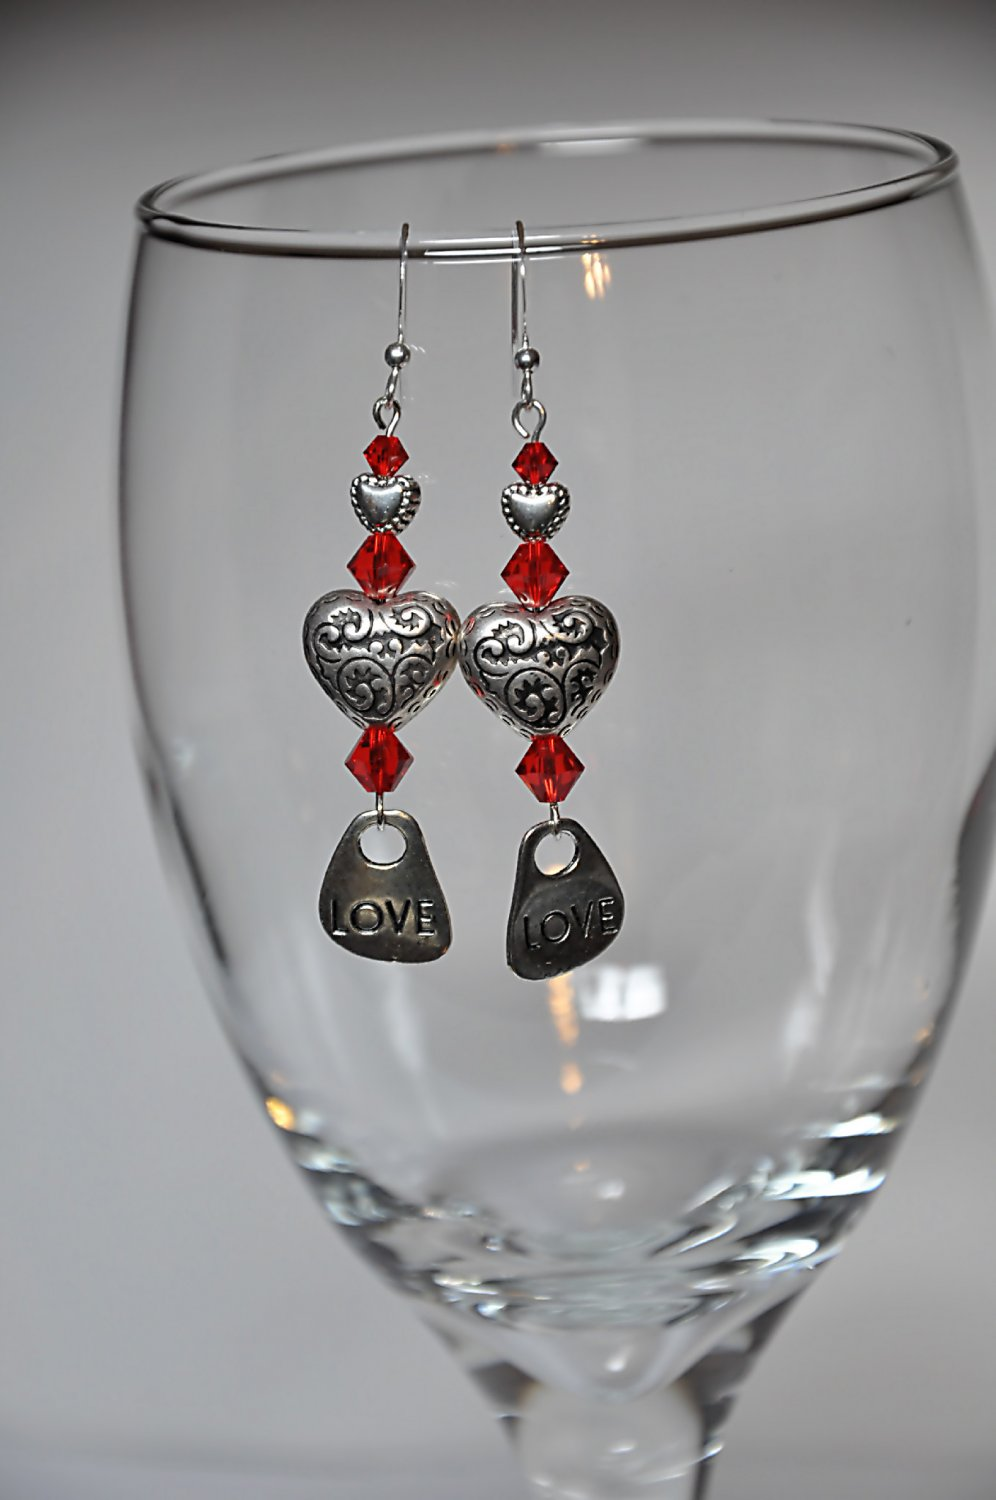 Unique Red Swarovski Crystals w Silver Hearts and Love Charm Drop Earrings By Studio Bead Artist